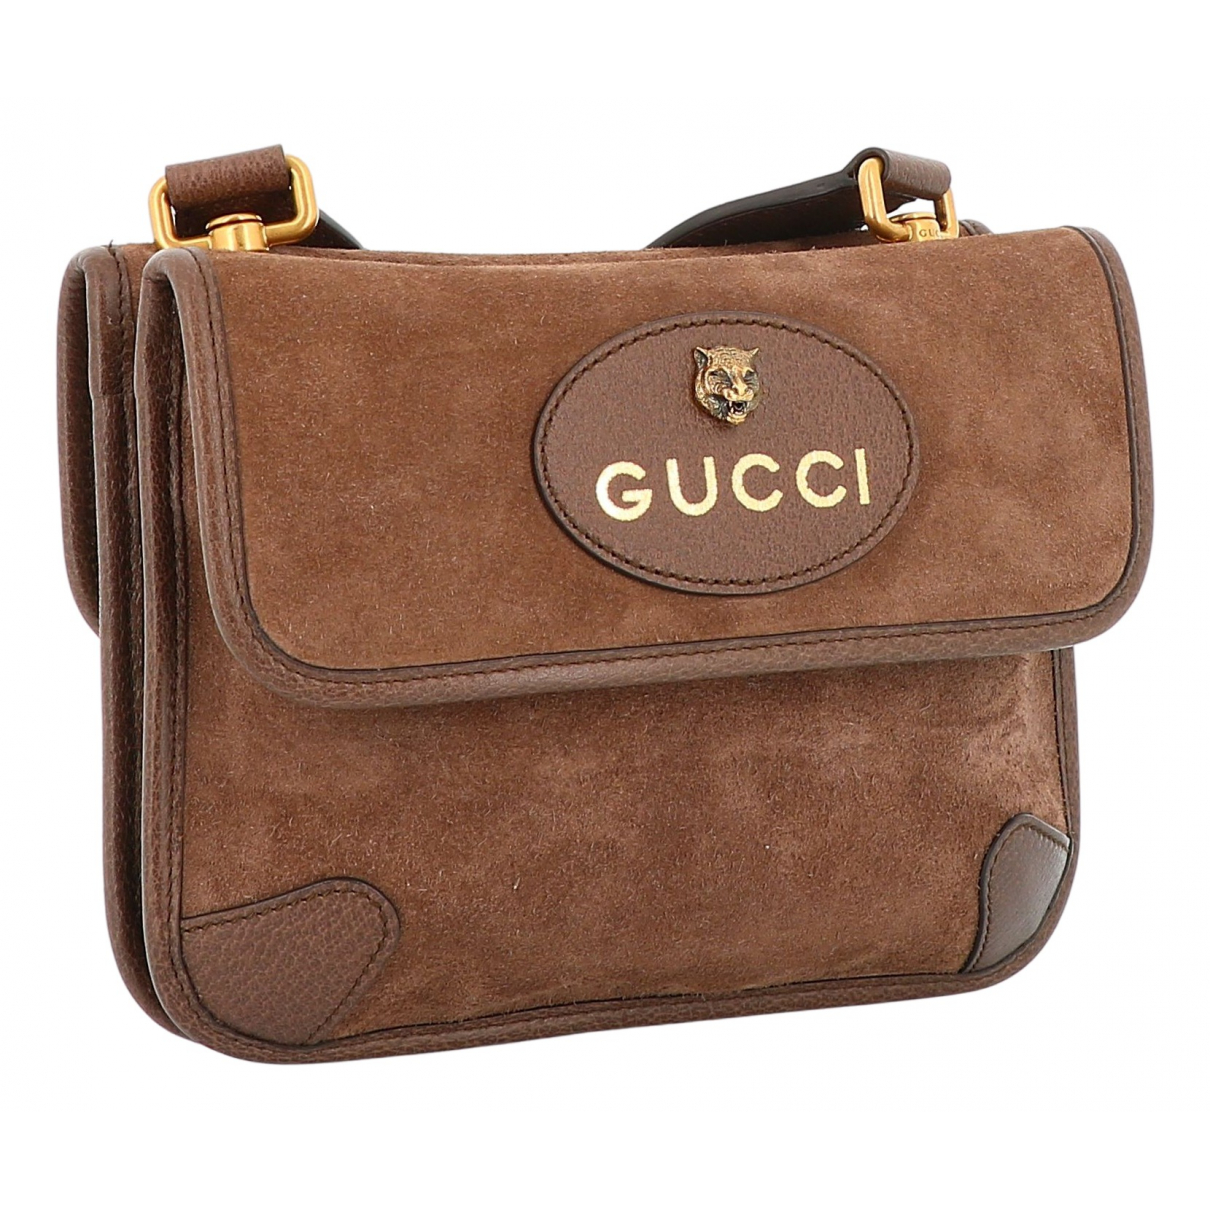 Gucci N Brown Suede handbag for Women N